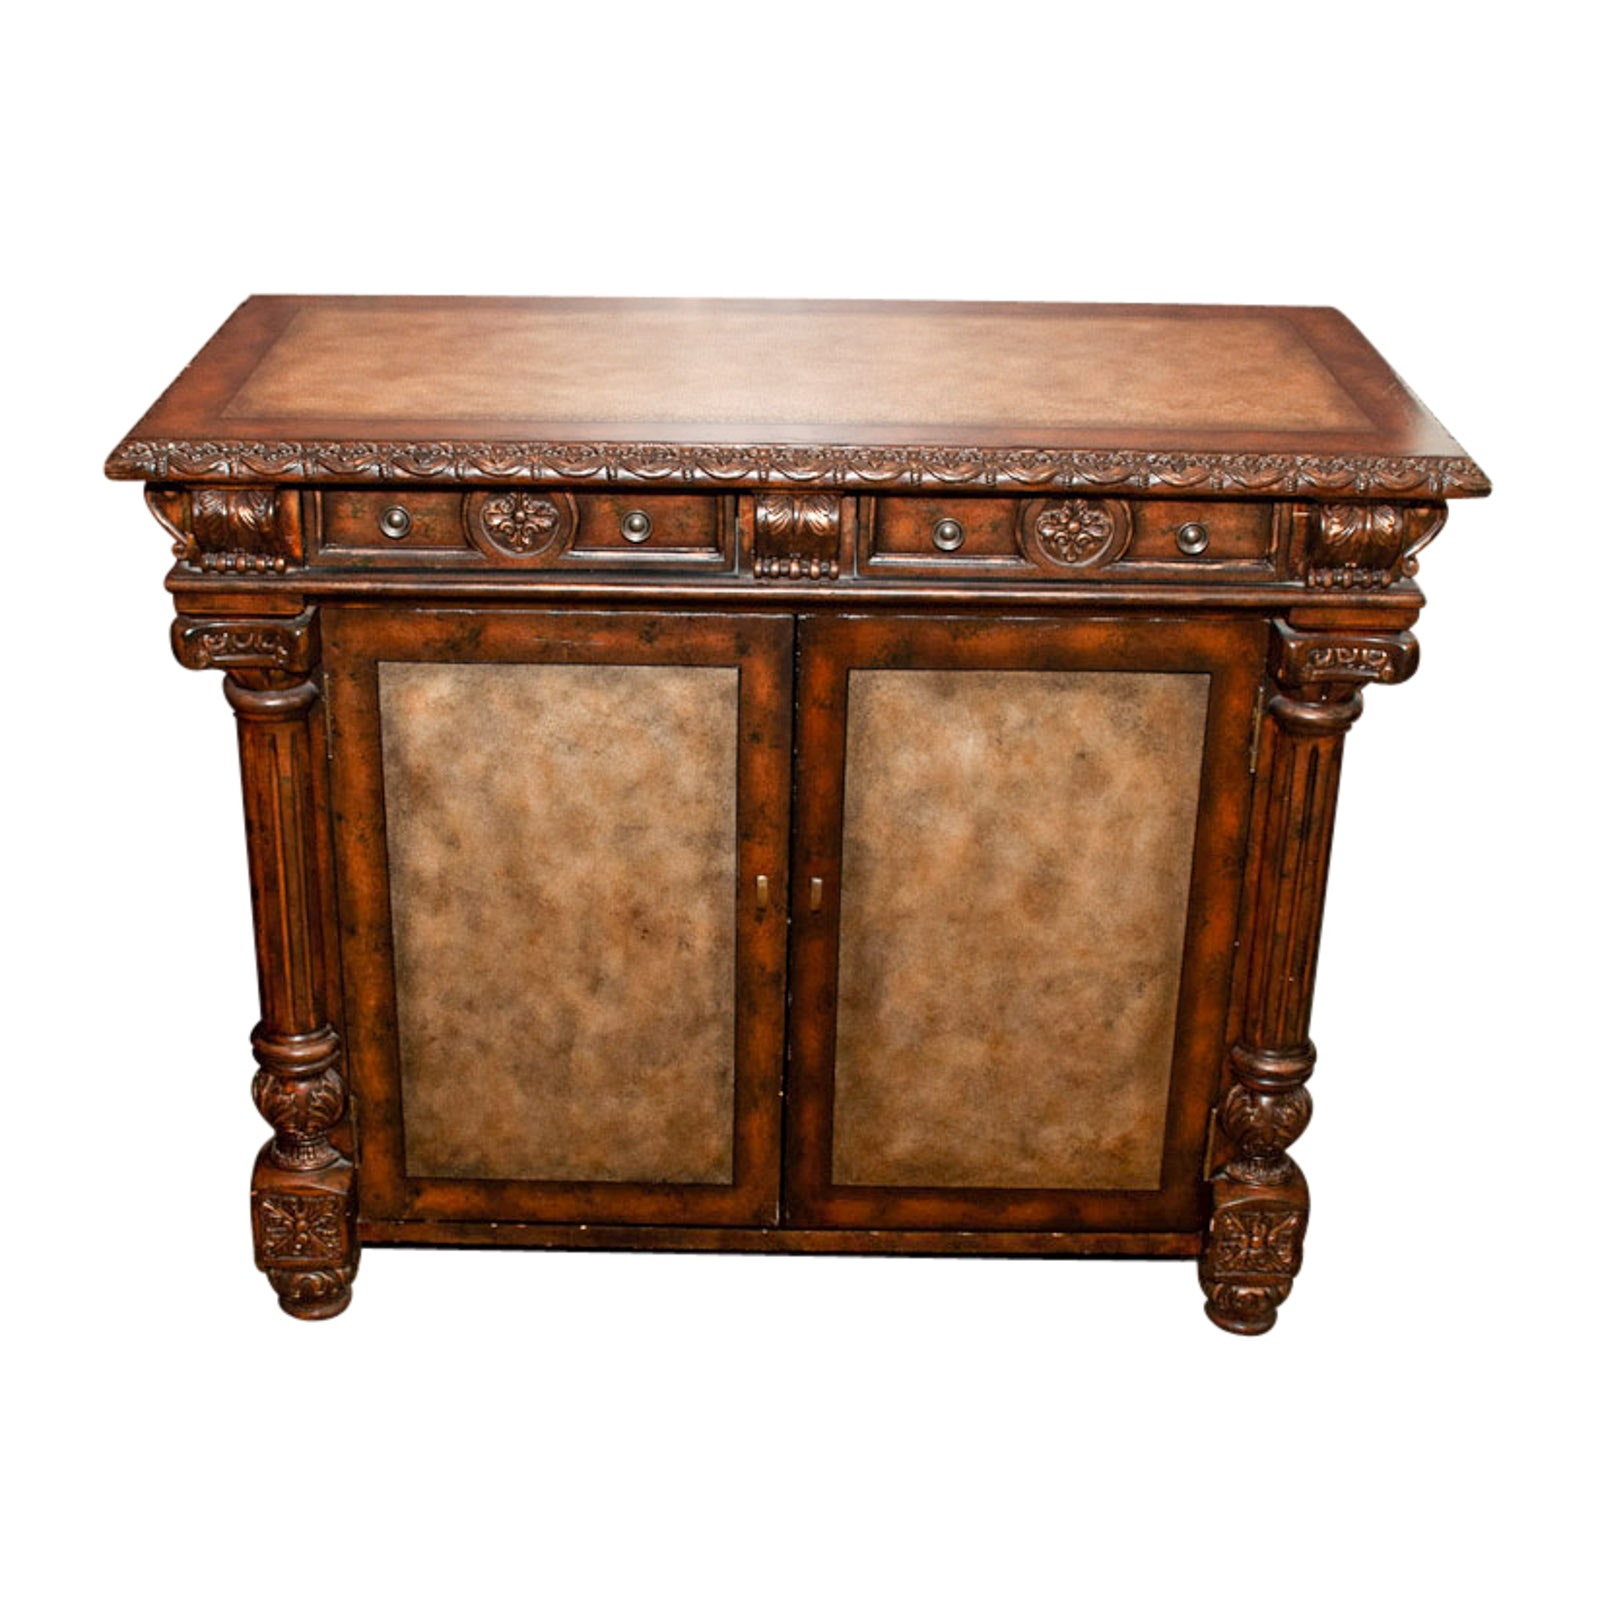 Renaissance Revival Style Wood and Leather Cabinet, Late 20th or 21st Century